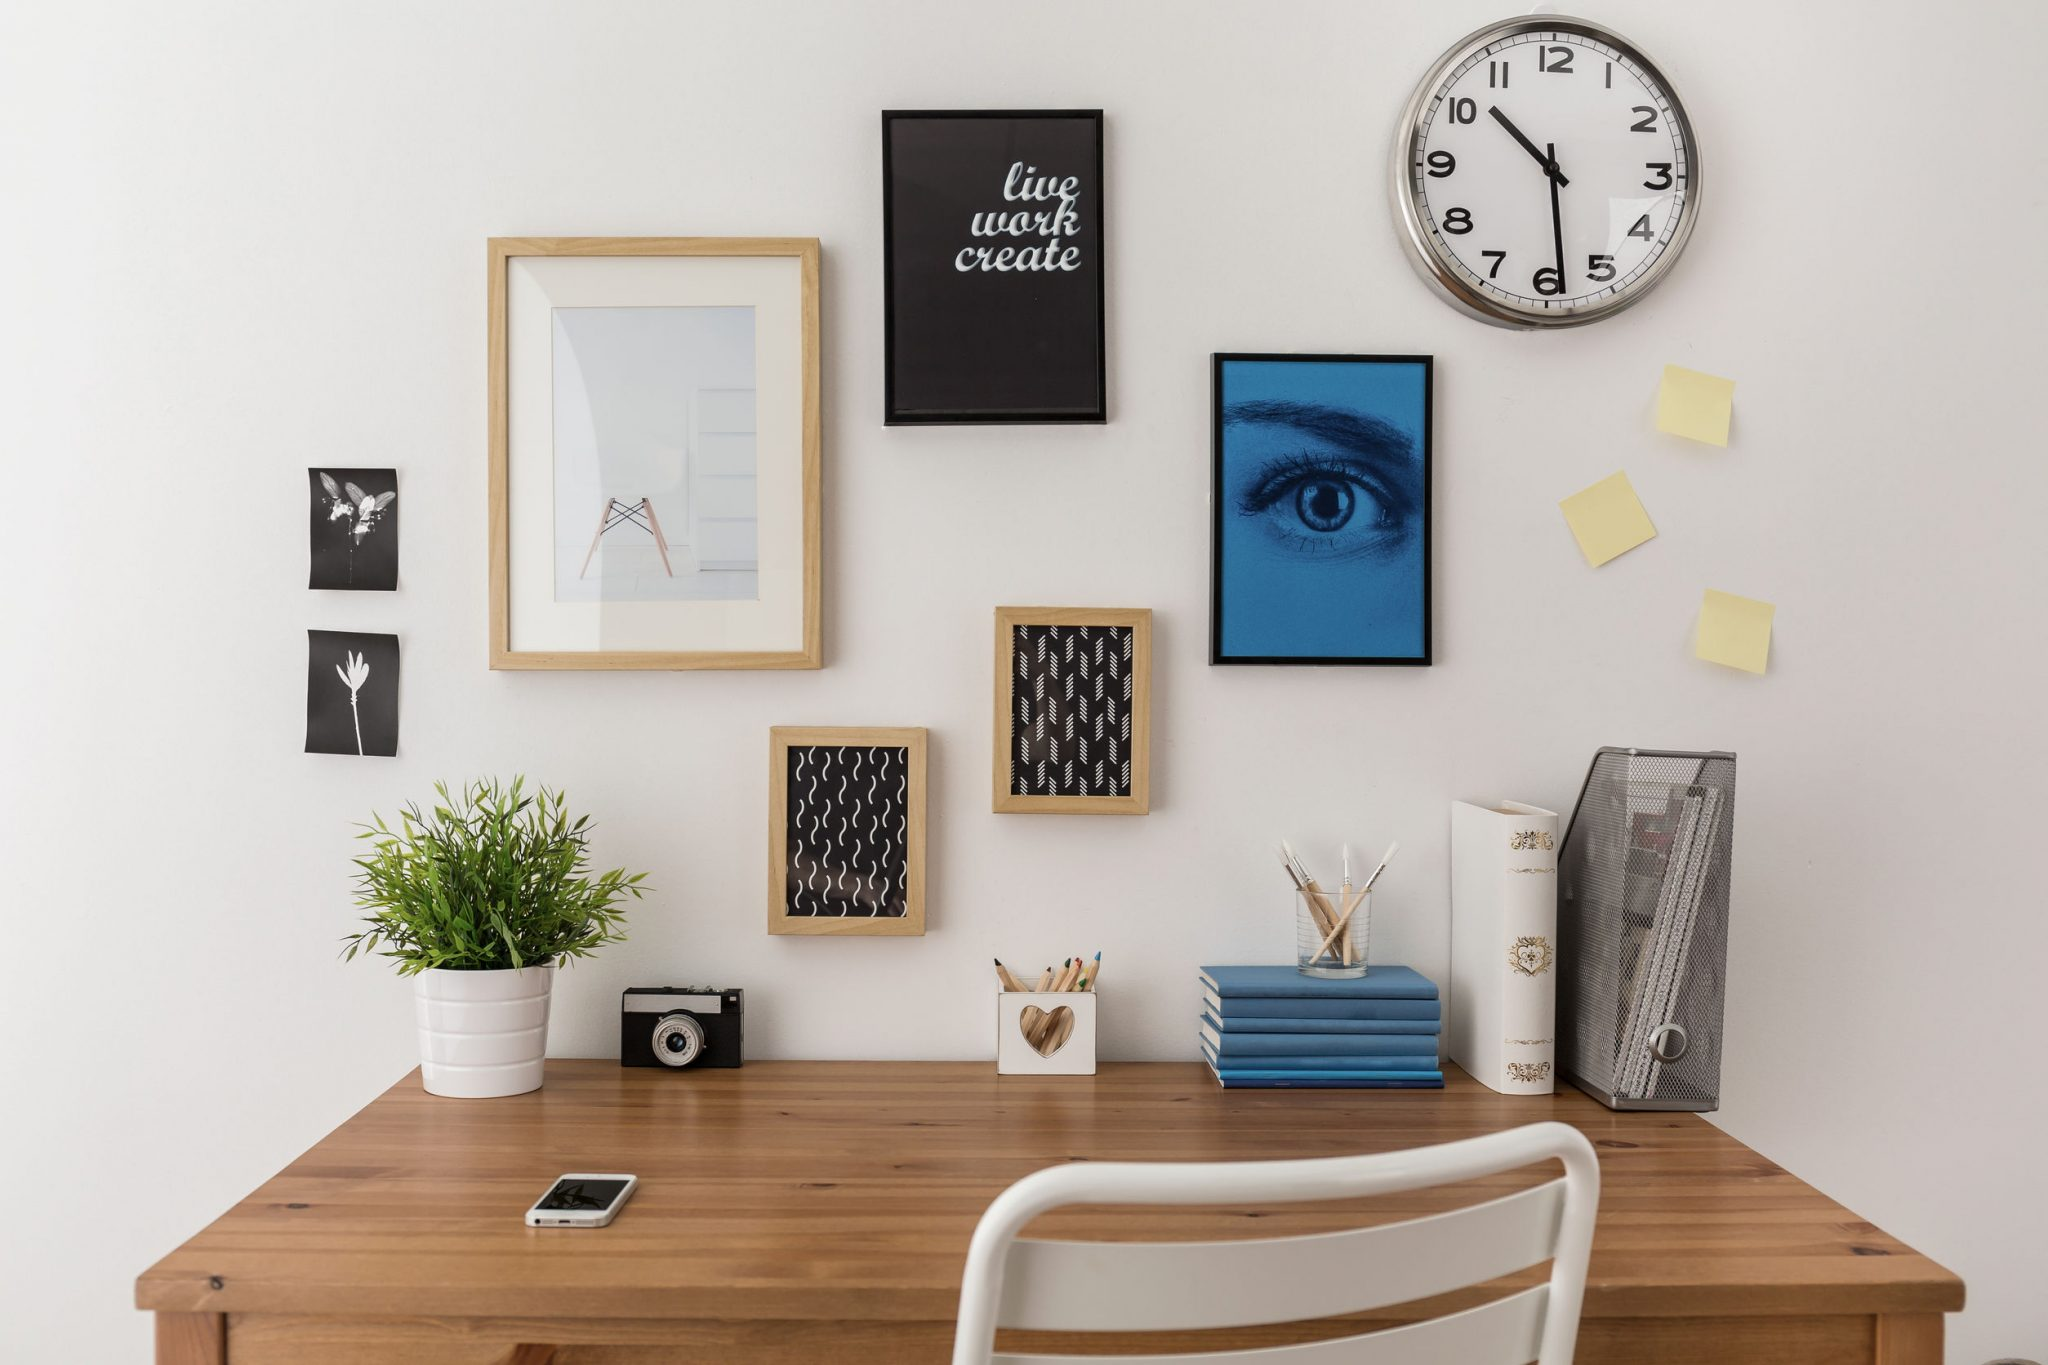 6 experts giving advice to help you organize your desk productivity